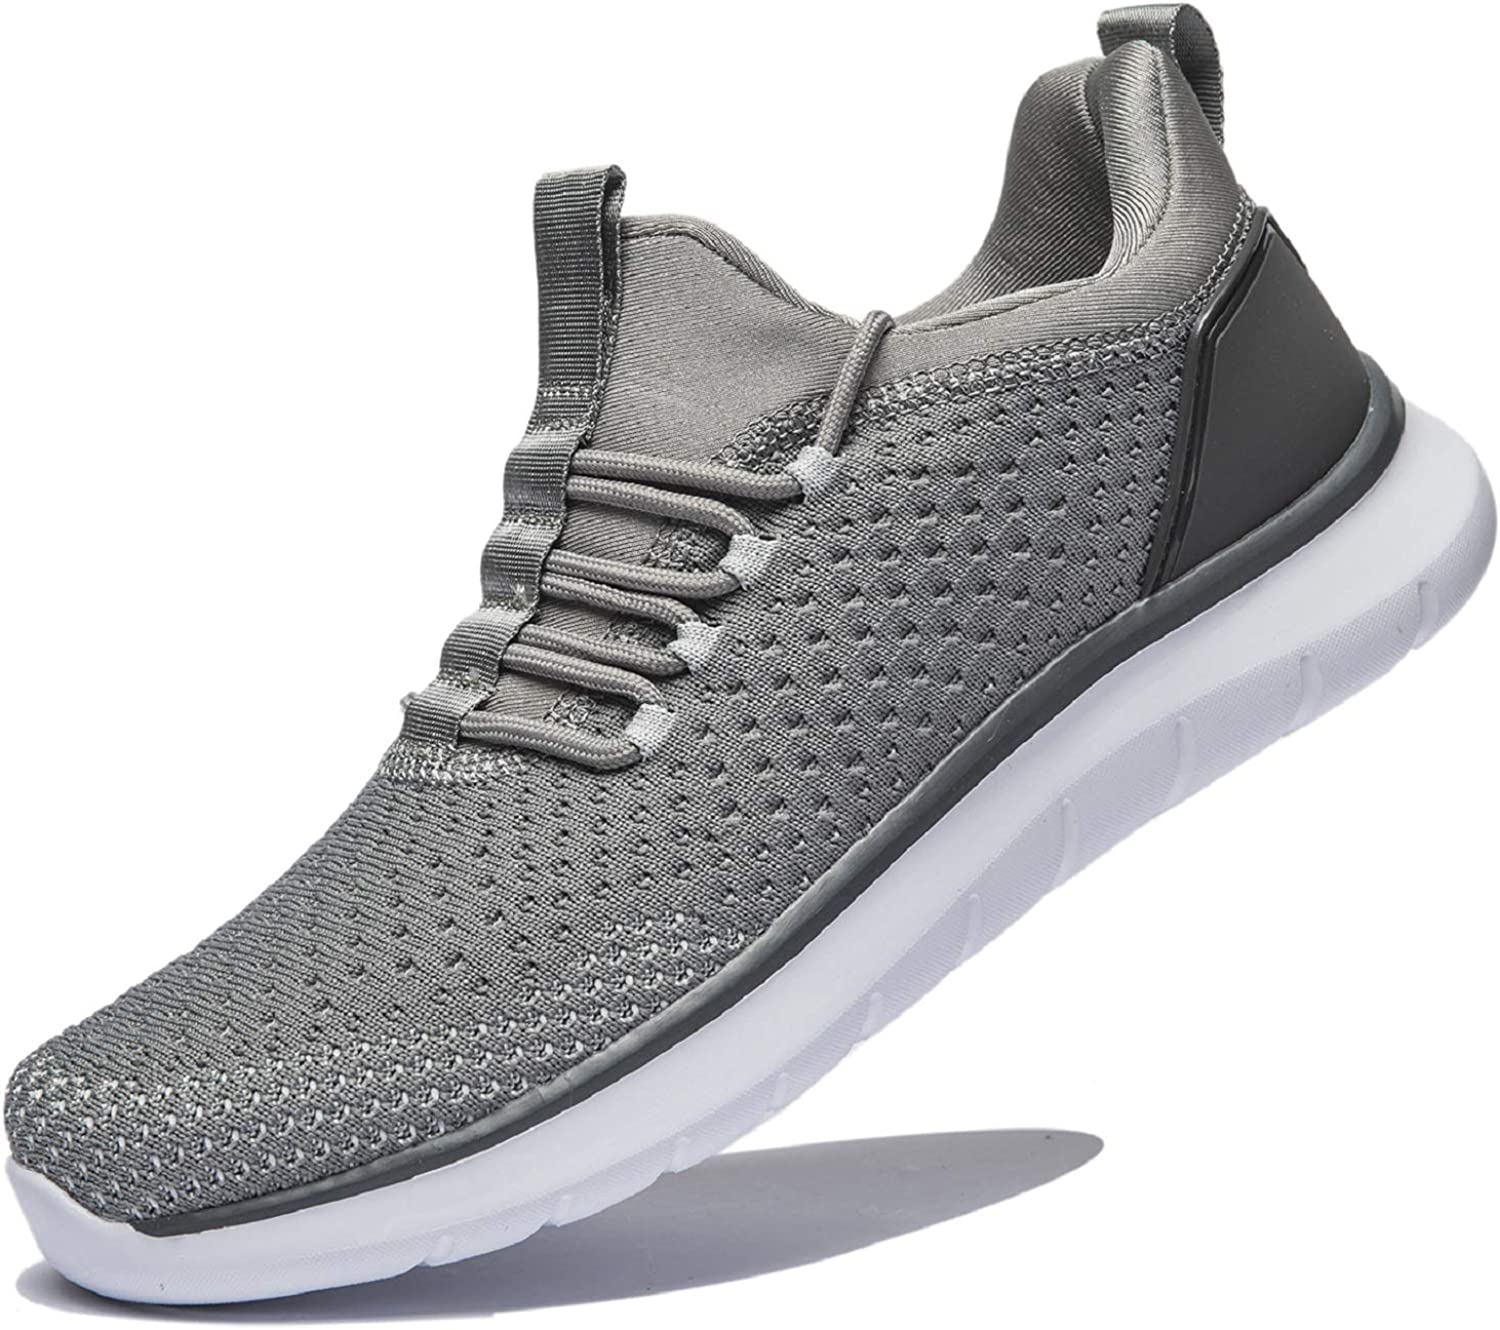 Ranberone Men's Walking Shoes Athletic Ranking TOP5 El Paso Mall Running D Casual Sneakers